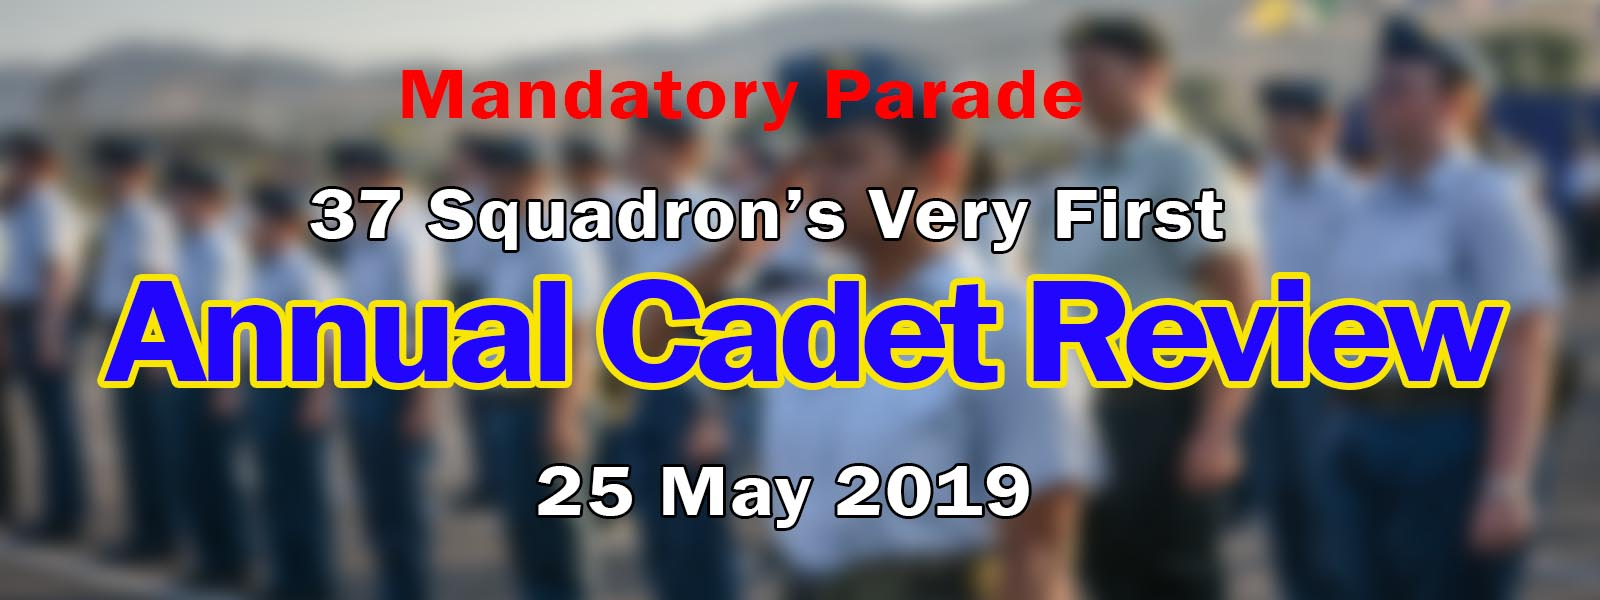 Annual Cadet Review